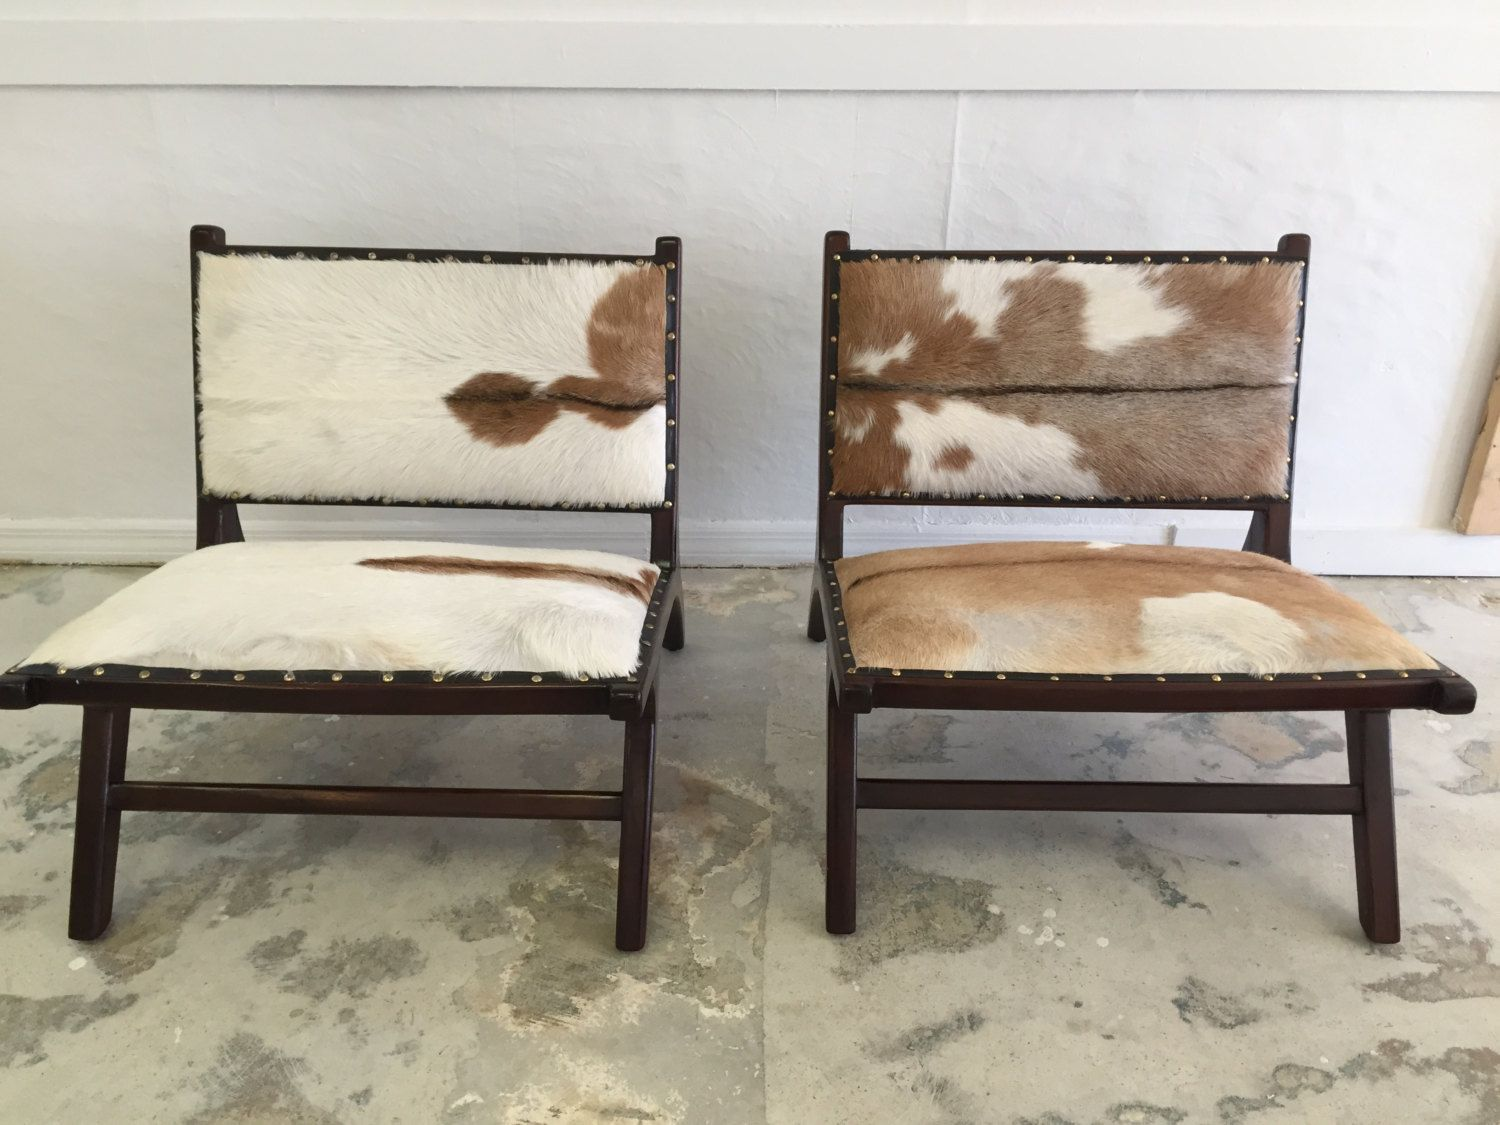 Pair of Vintage Wood Living/bedroom Chairs with Cowhide by SoAkiba on Etsy